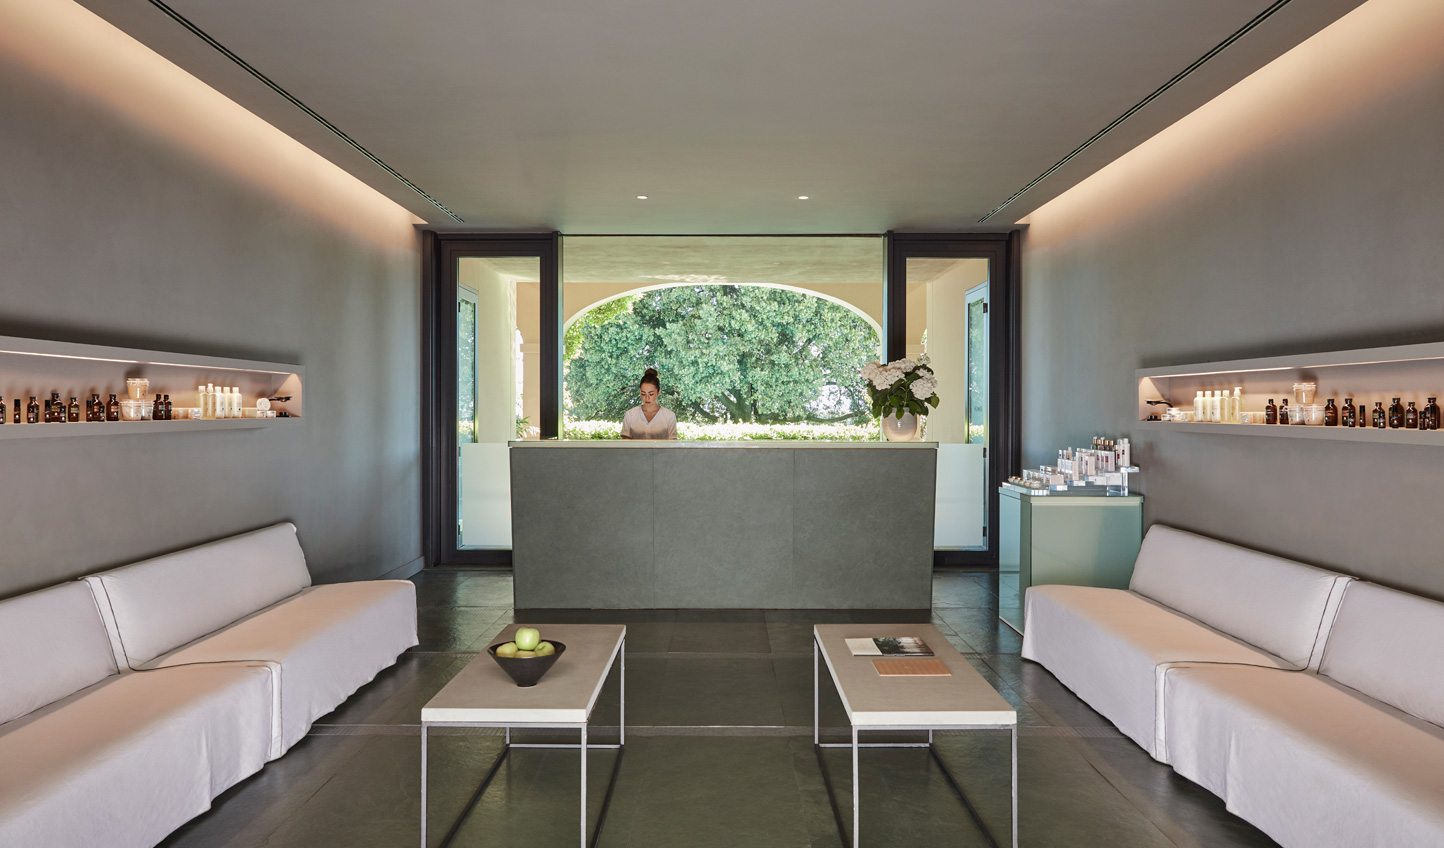 Enjoy a spot of pampering at the state of the art COMO Shambhala Retreat Spa